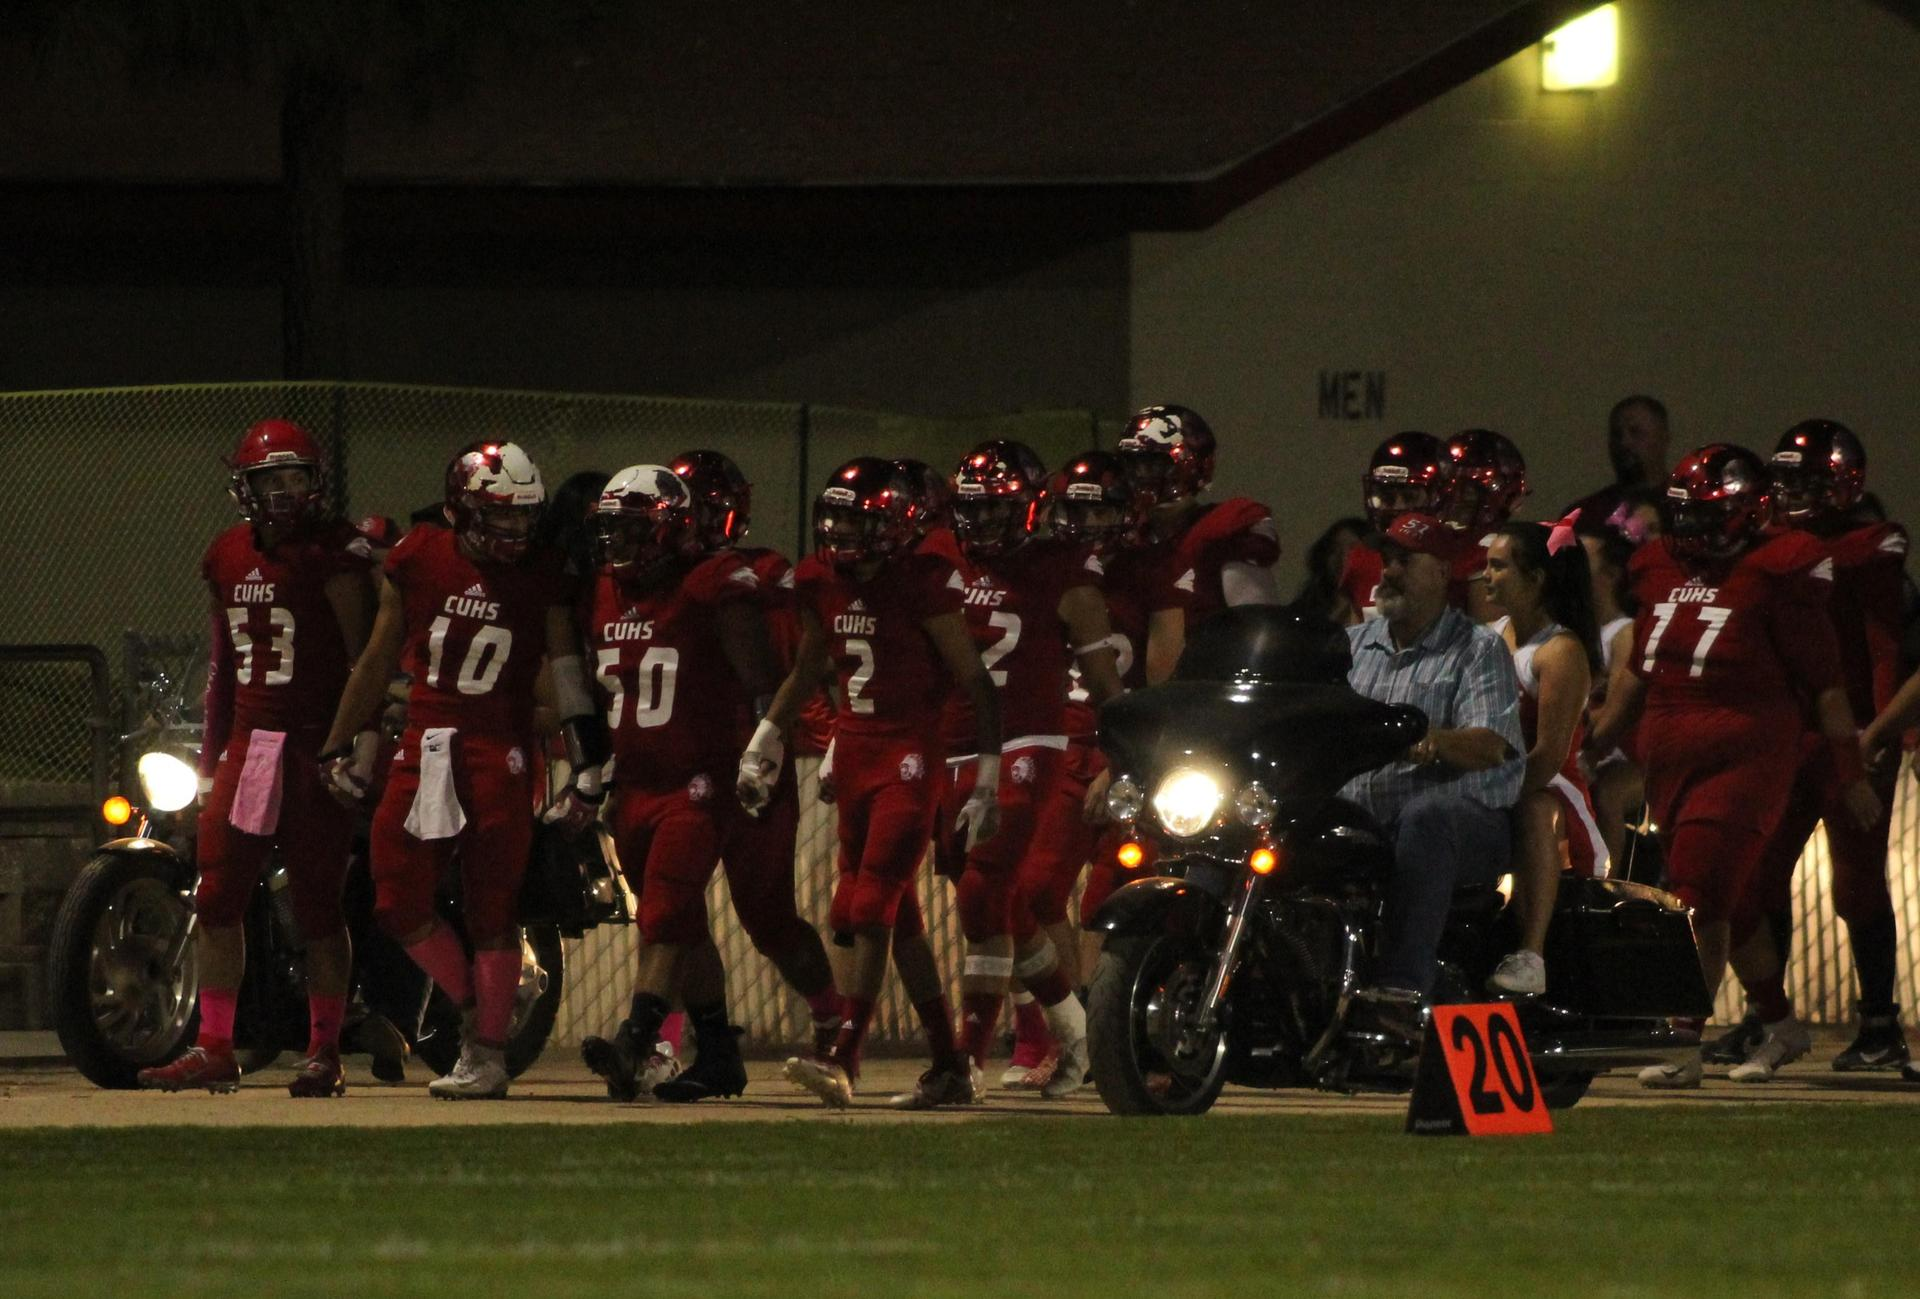 Varsity football players, cheerleaders, and chain gang workers at football game against Yosemite